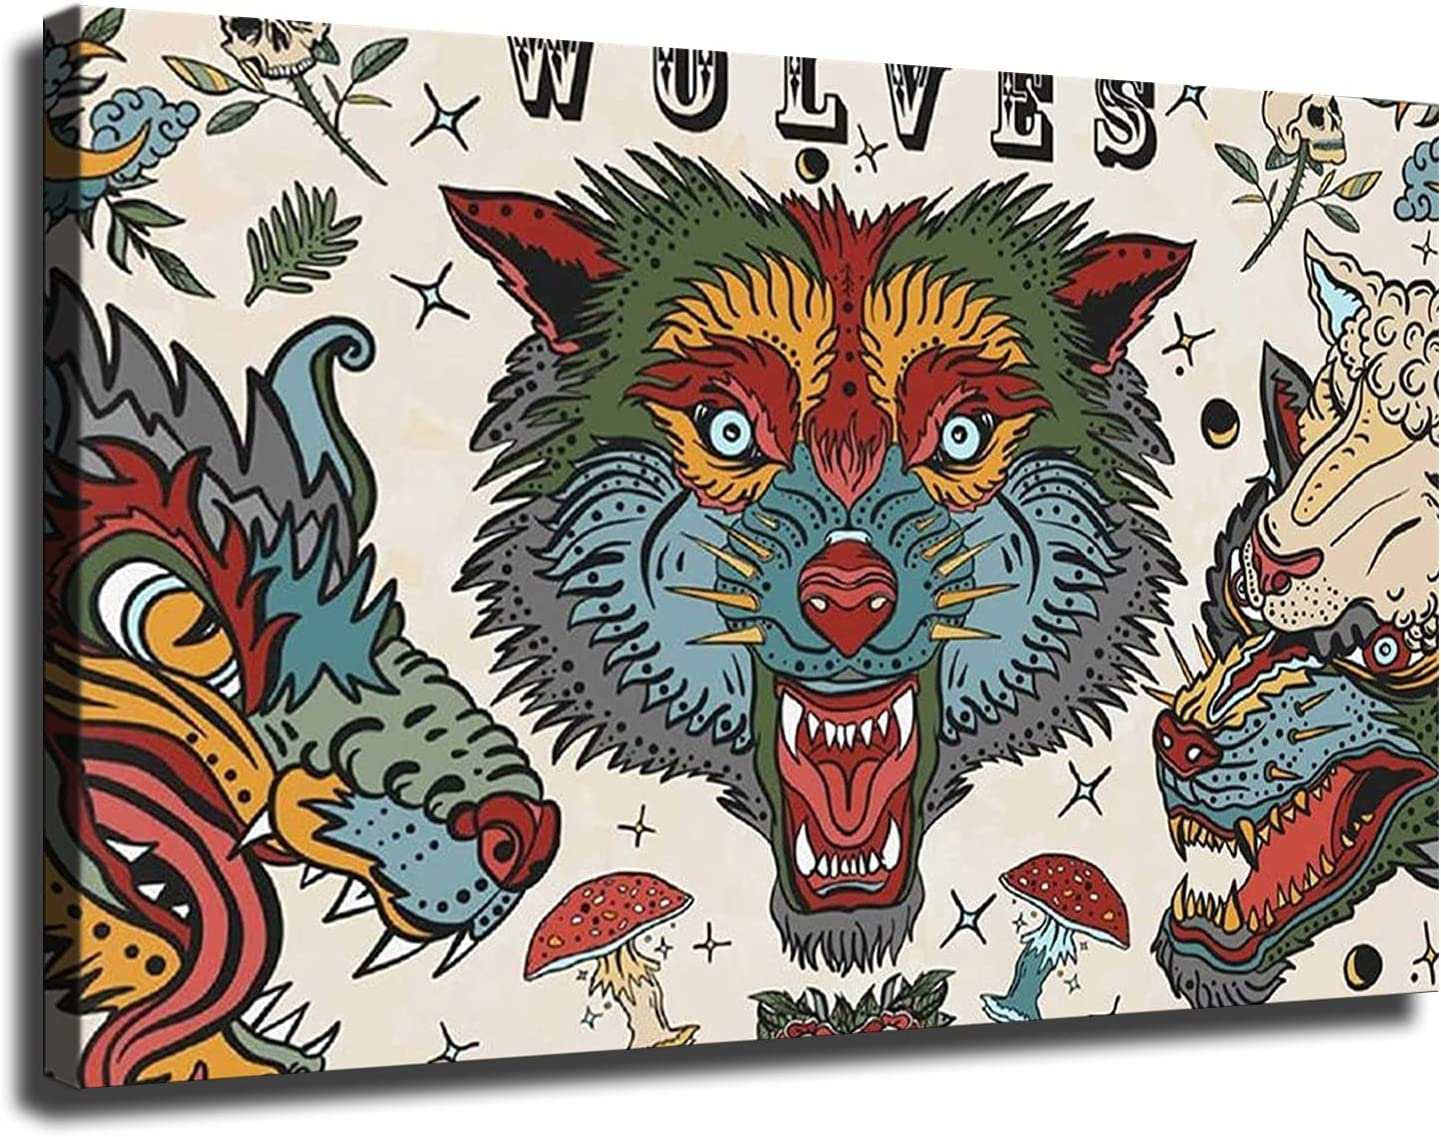 Wolves Tattoo Poster Picture Art Print Canvas Wall Art Home Living Room Decor Mural (12×16inch-No Framed)